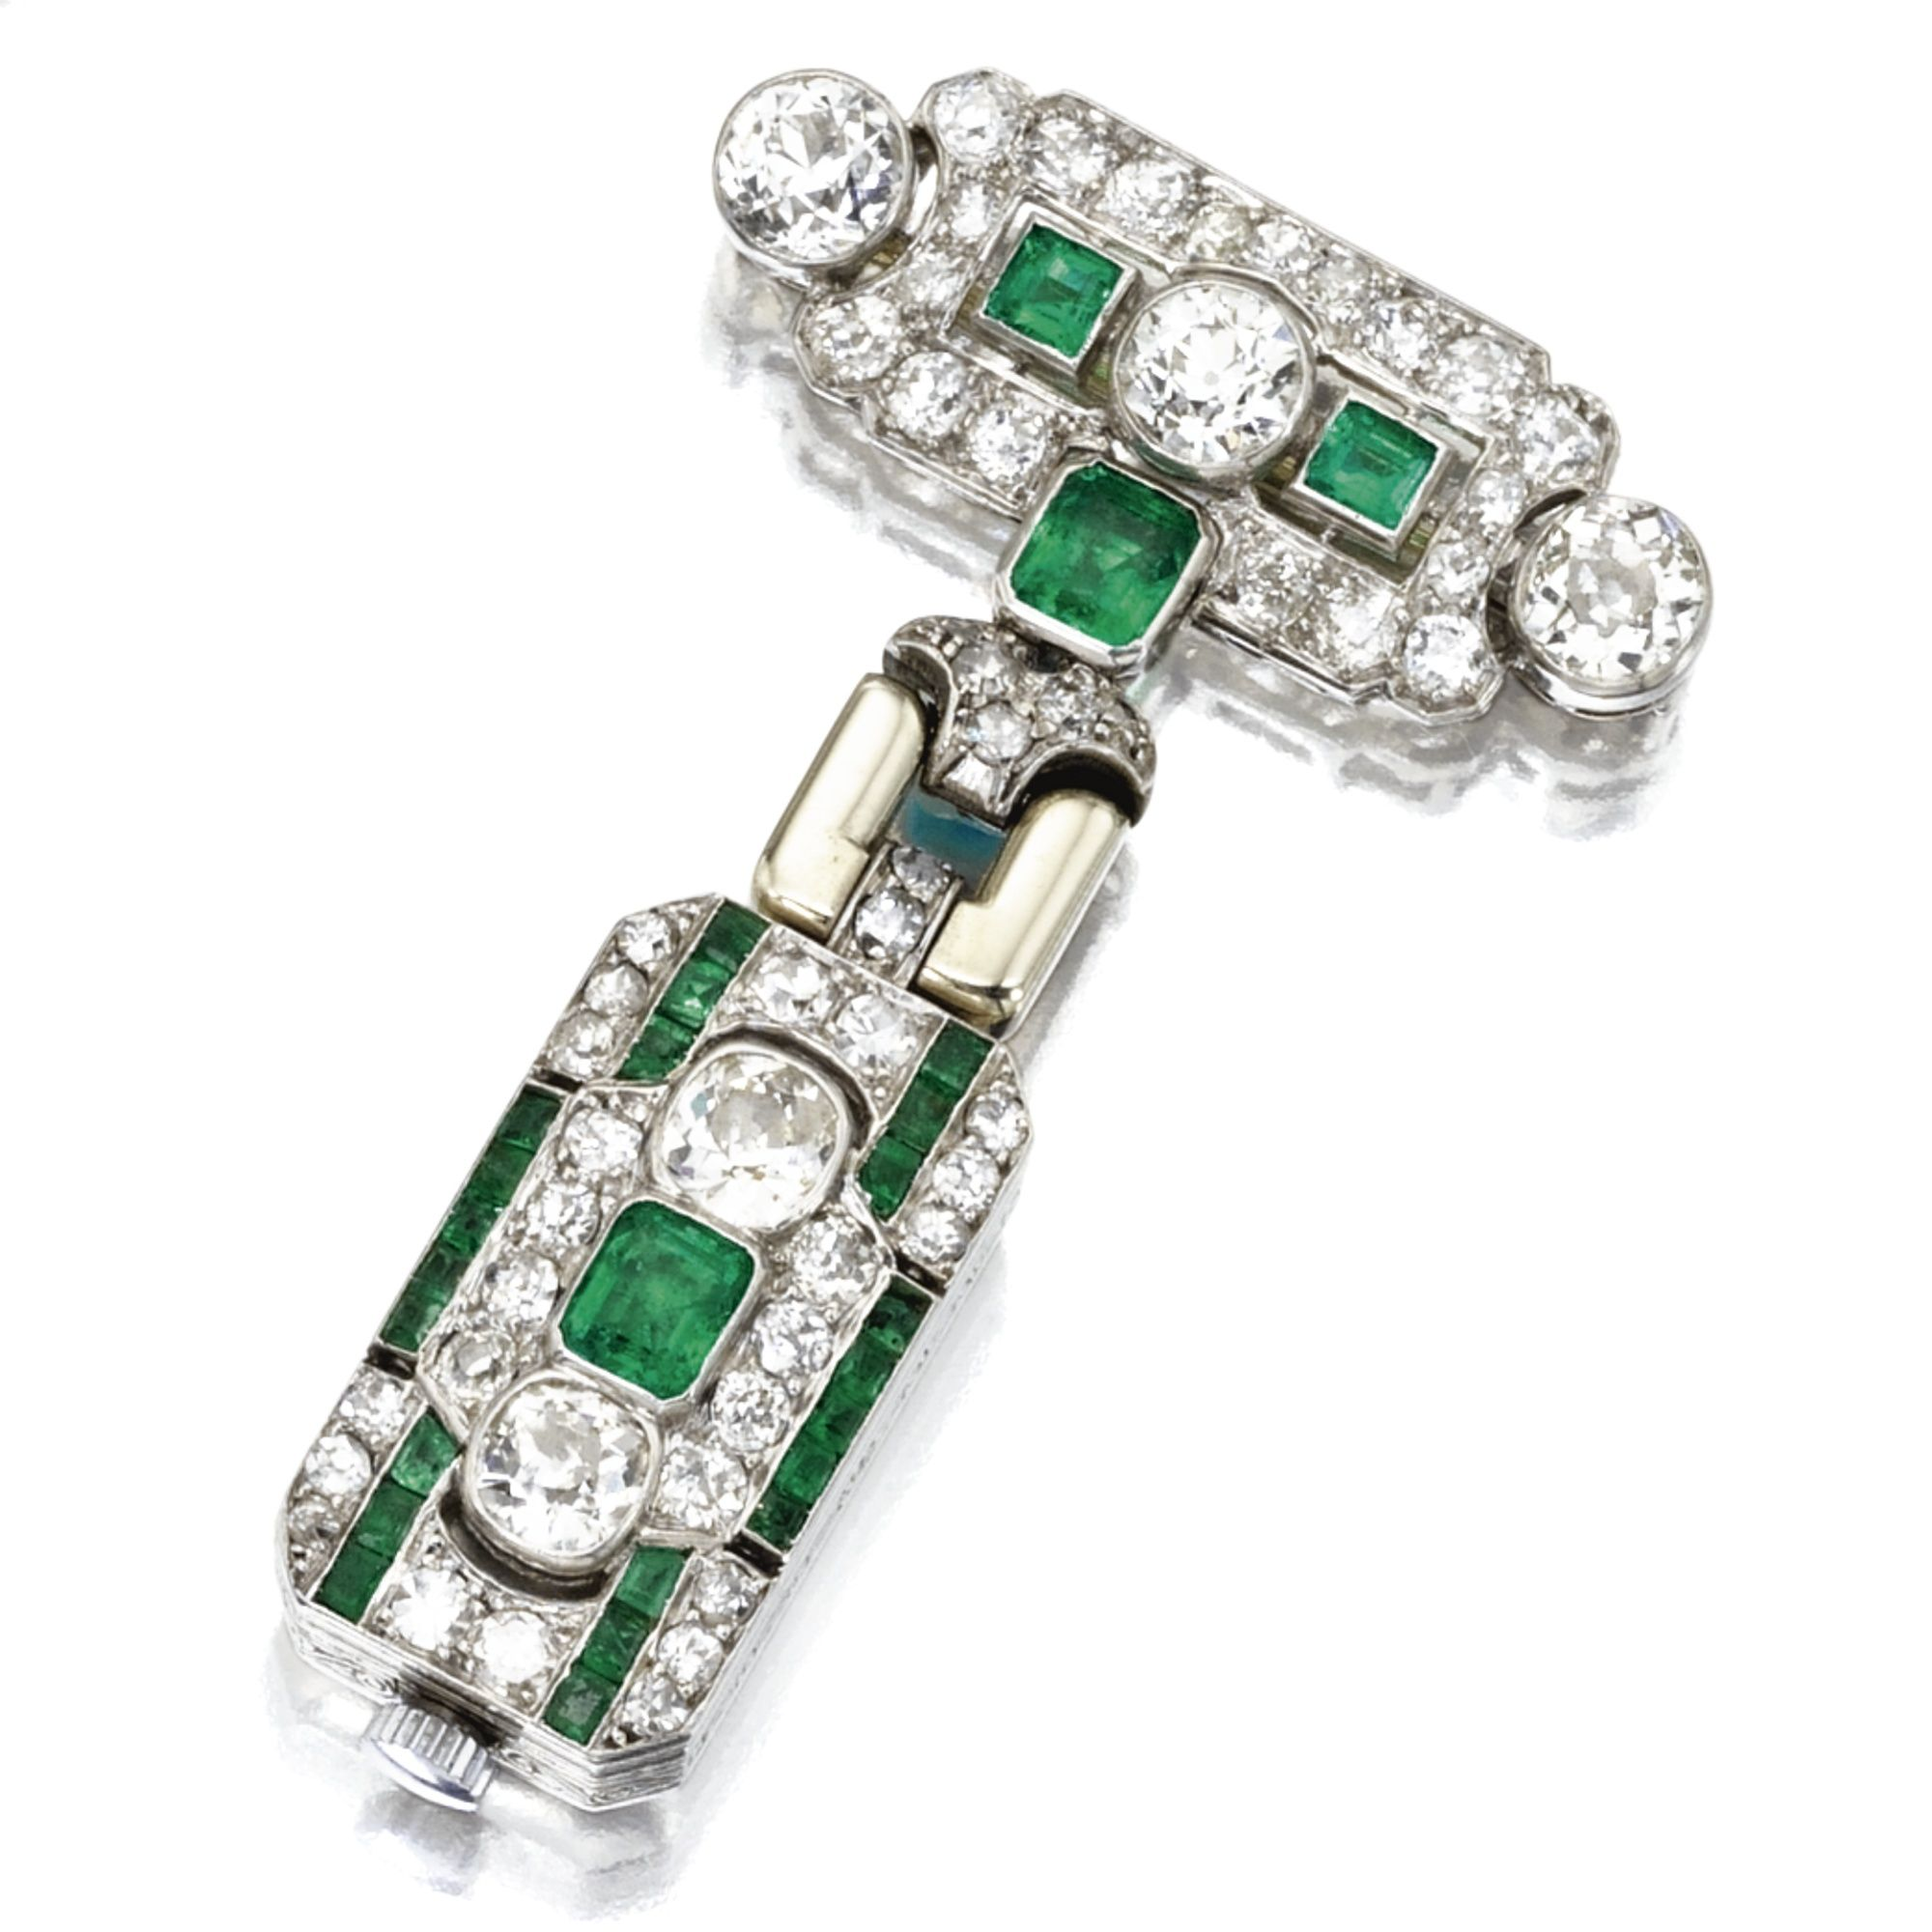 Platinum emerald and diamond pendantwatch french movement by